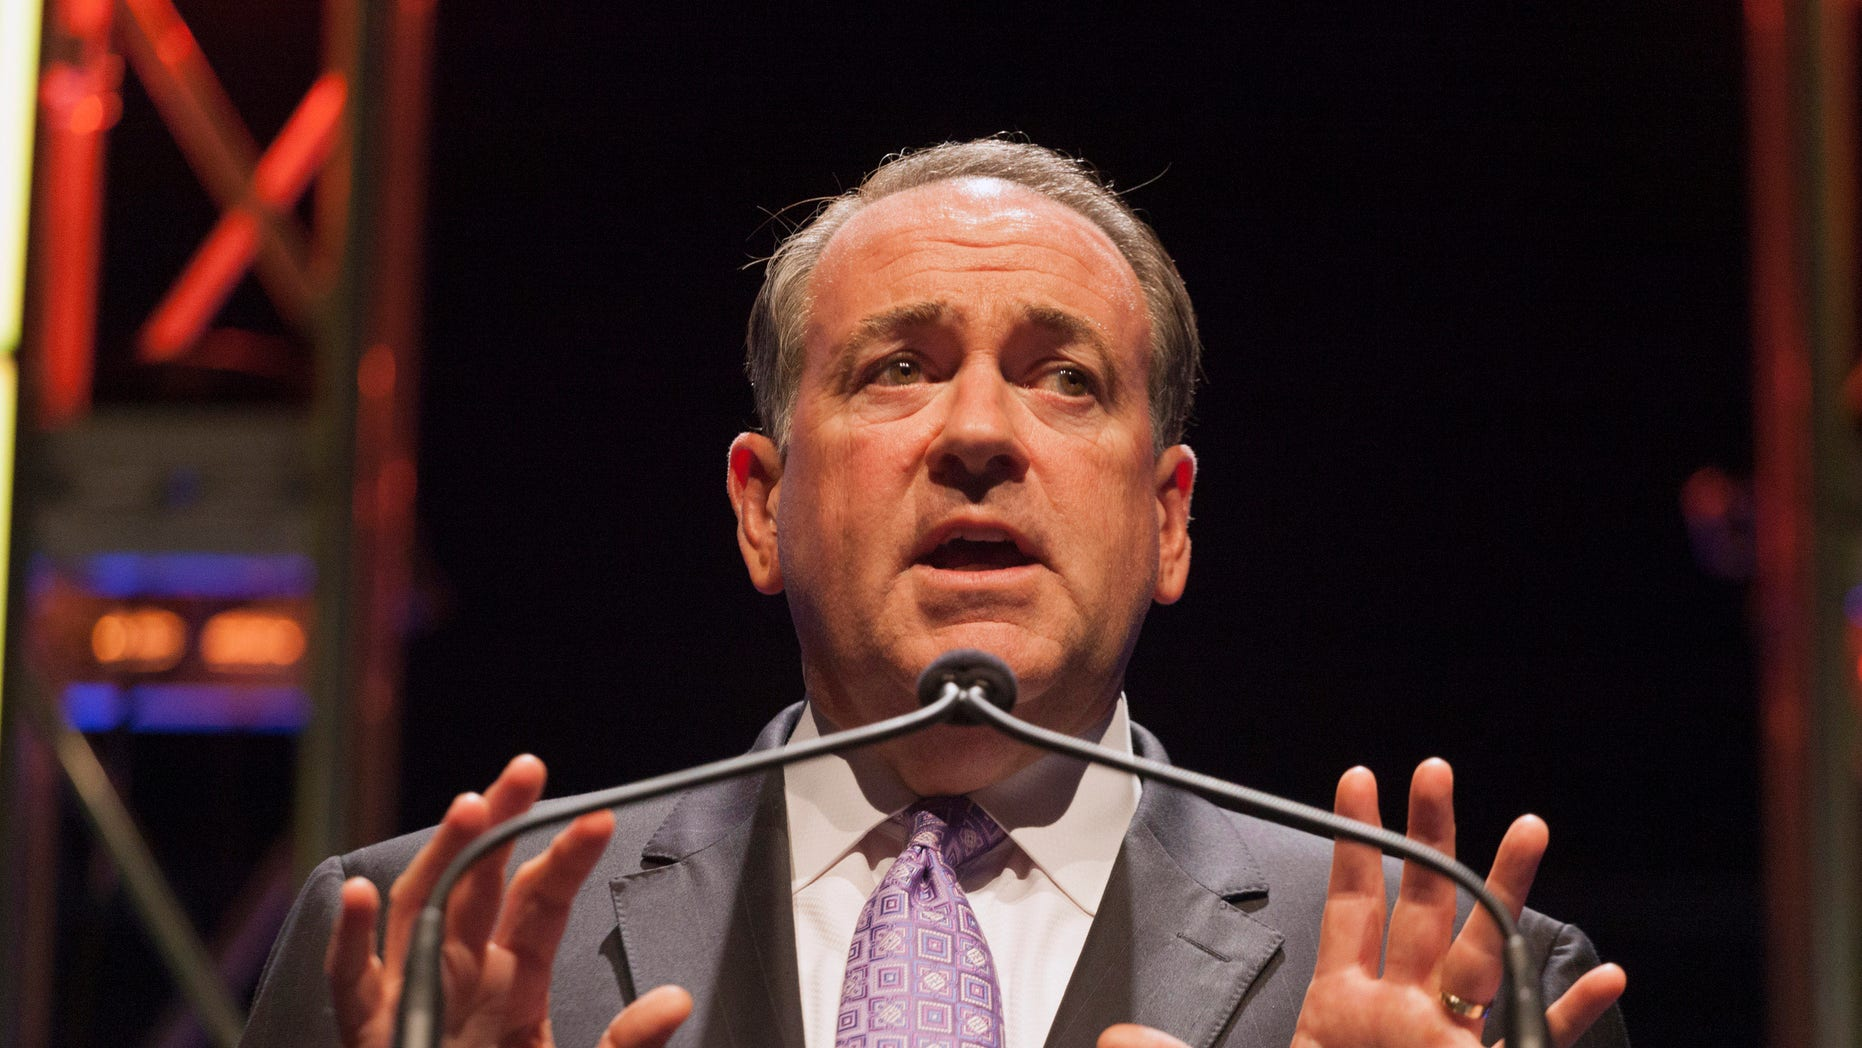 Aug. 9, 2014: Former Arkansas Governor Mike Huckabee speaks at the Family Leadership Summit in Ames, Iowa.